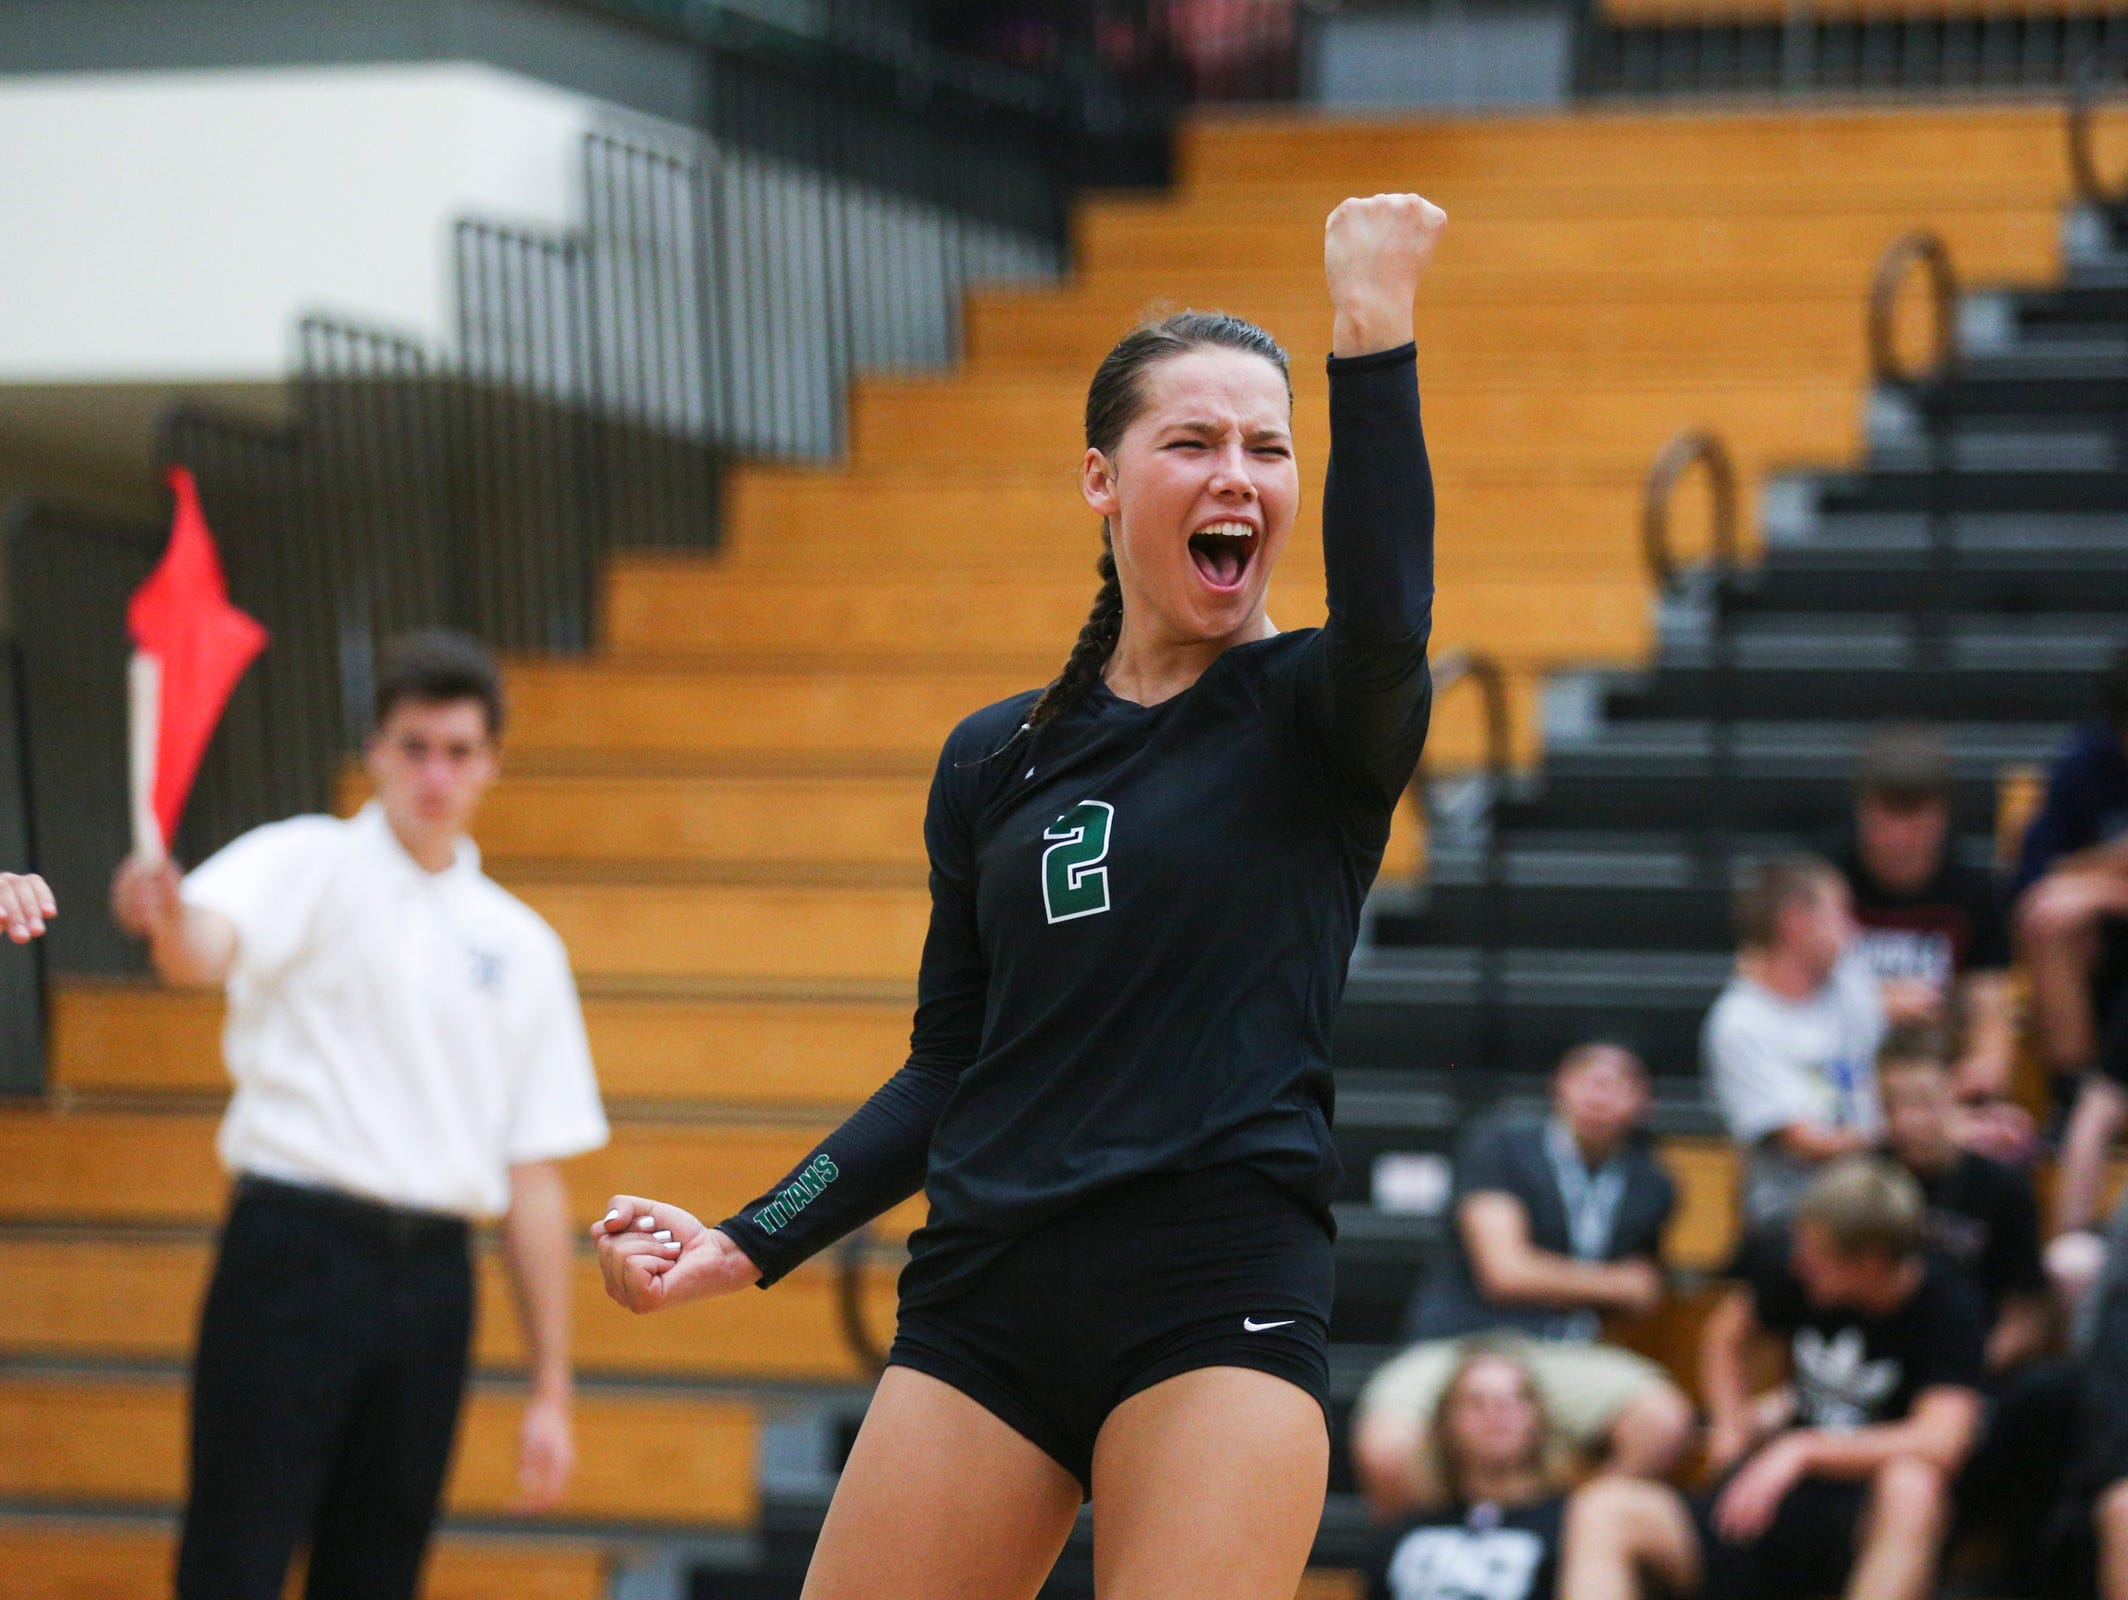 West Salem's Kasey Campbell celebrates after a the Titans are awarded a point in a game against South Salem on Tuesday, Sept. 6, 2016, at West Salem High School. The West Salem Titans won the match 3-1.